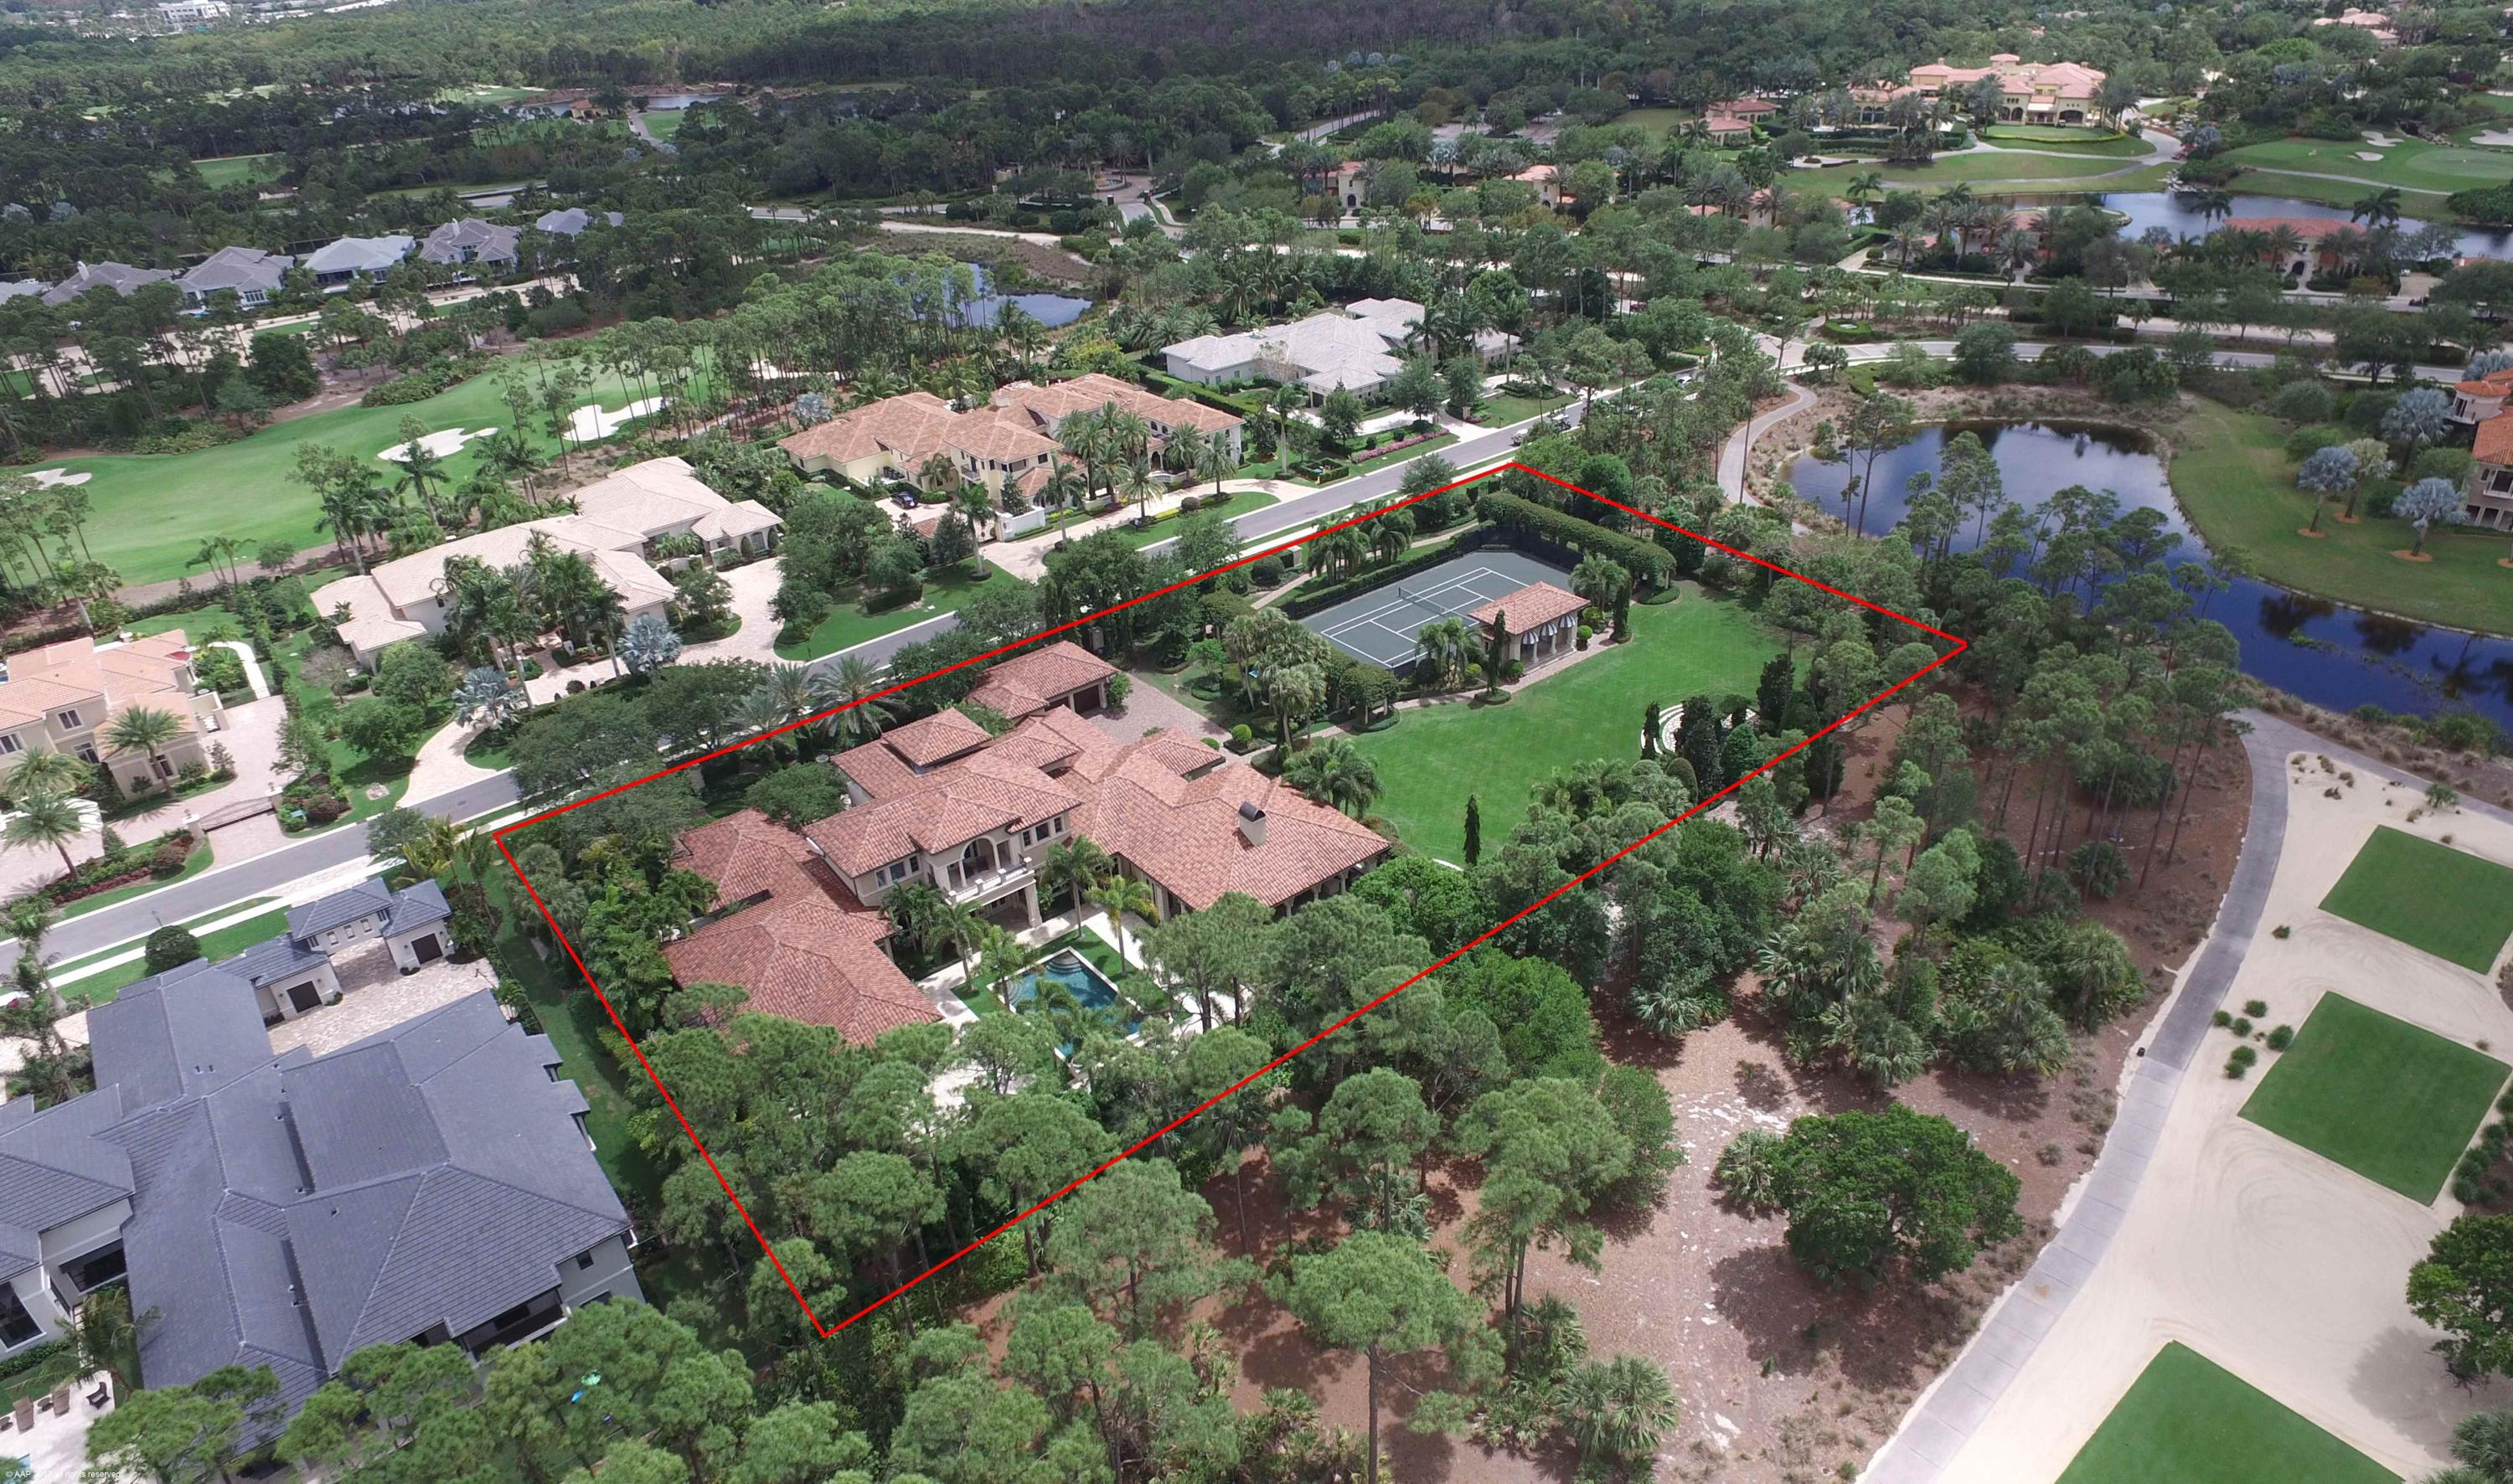 New Home for sale at 12203 Tillinghast Circle in Palm Beach Gardens